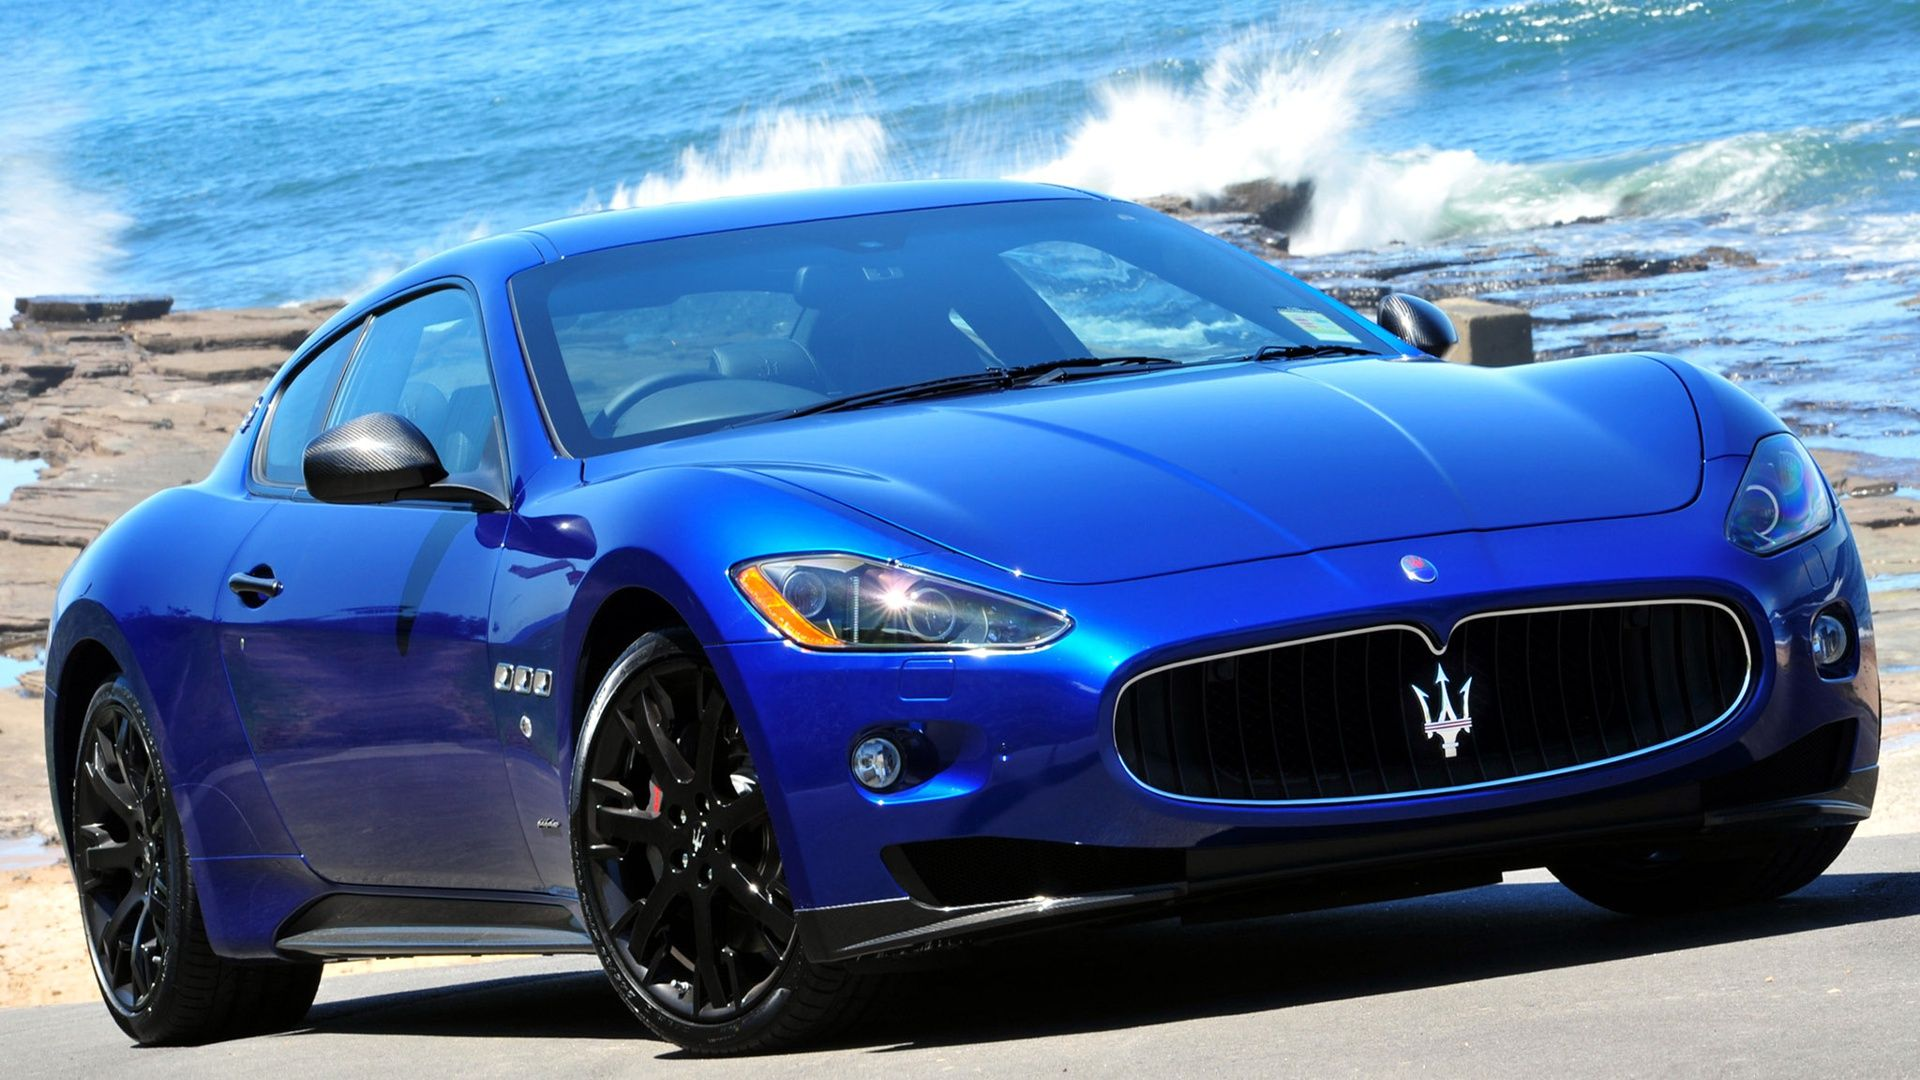 Maserati Granturismo S Mc In Blue Best Pictures Hd